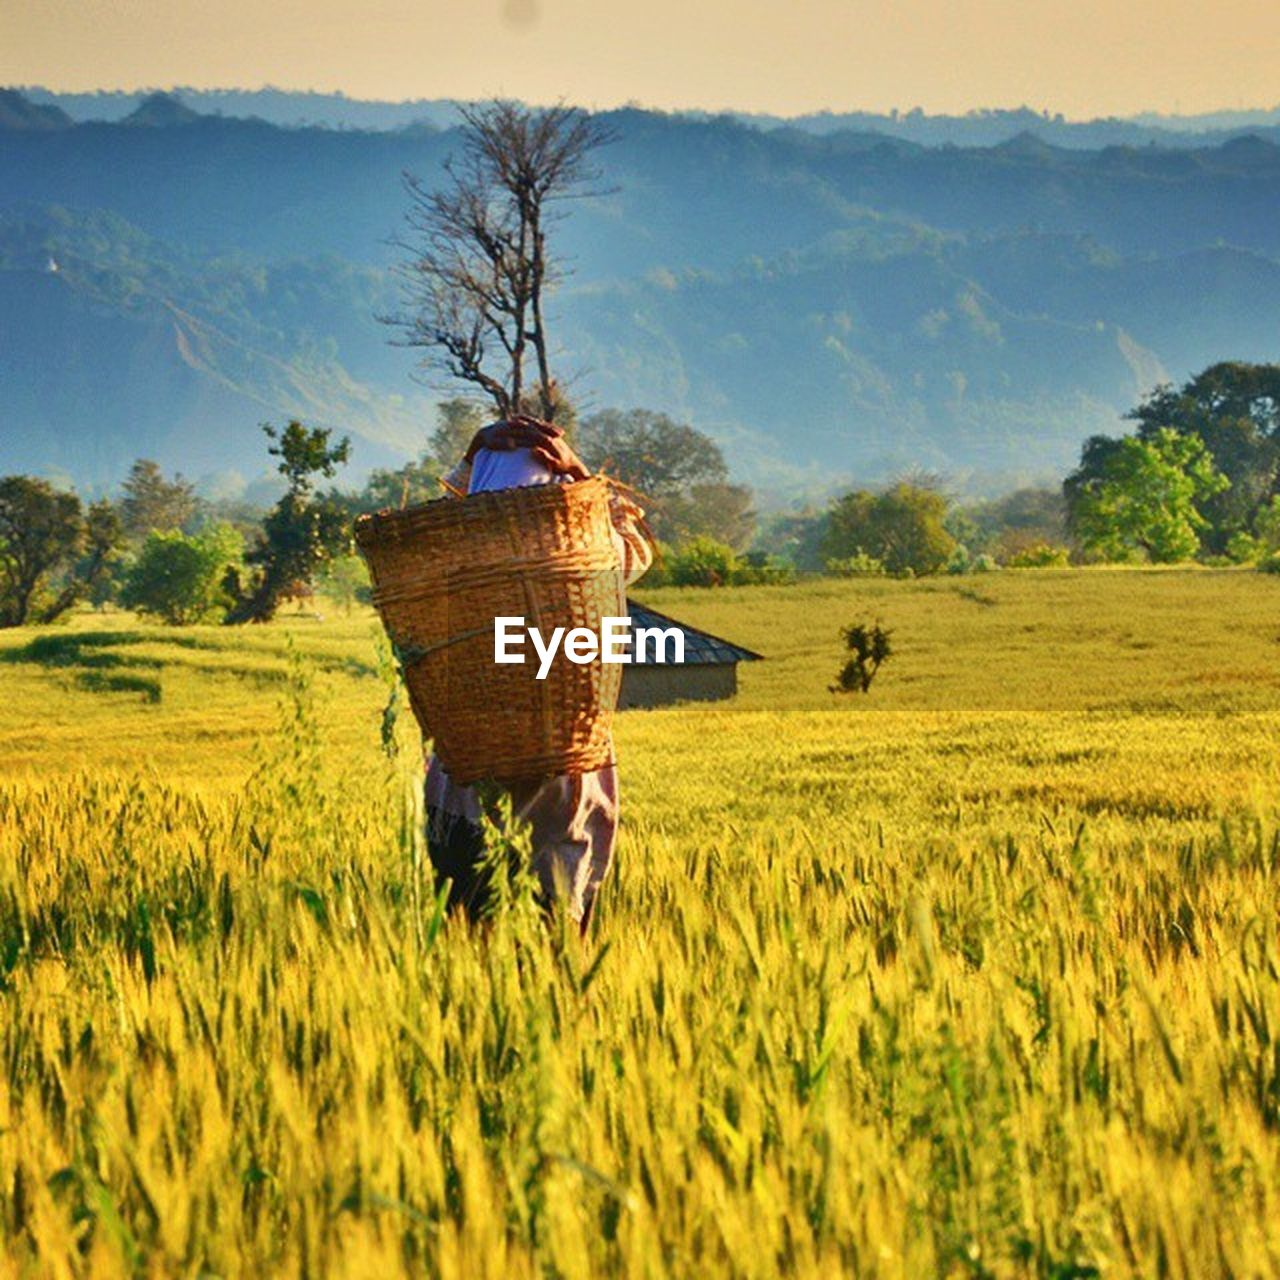 field, agriculture, farm, landscape, nature, tree, rural scene, farmer, growth, crop, real people, men, rear view, outdoors, occupation, beauty in nature, day, scenics, basket, mammal, sky, farm worker, grass, scarecrow, working, cereal plant, one person, people